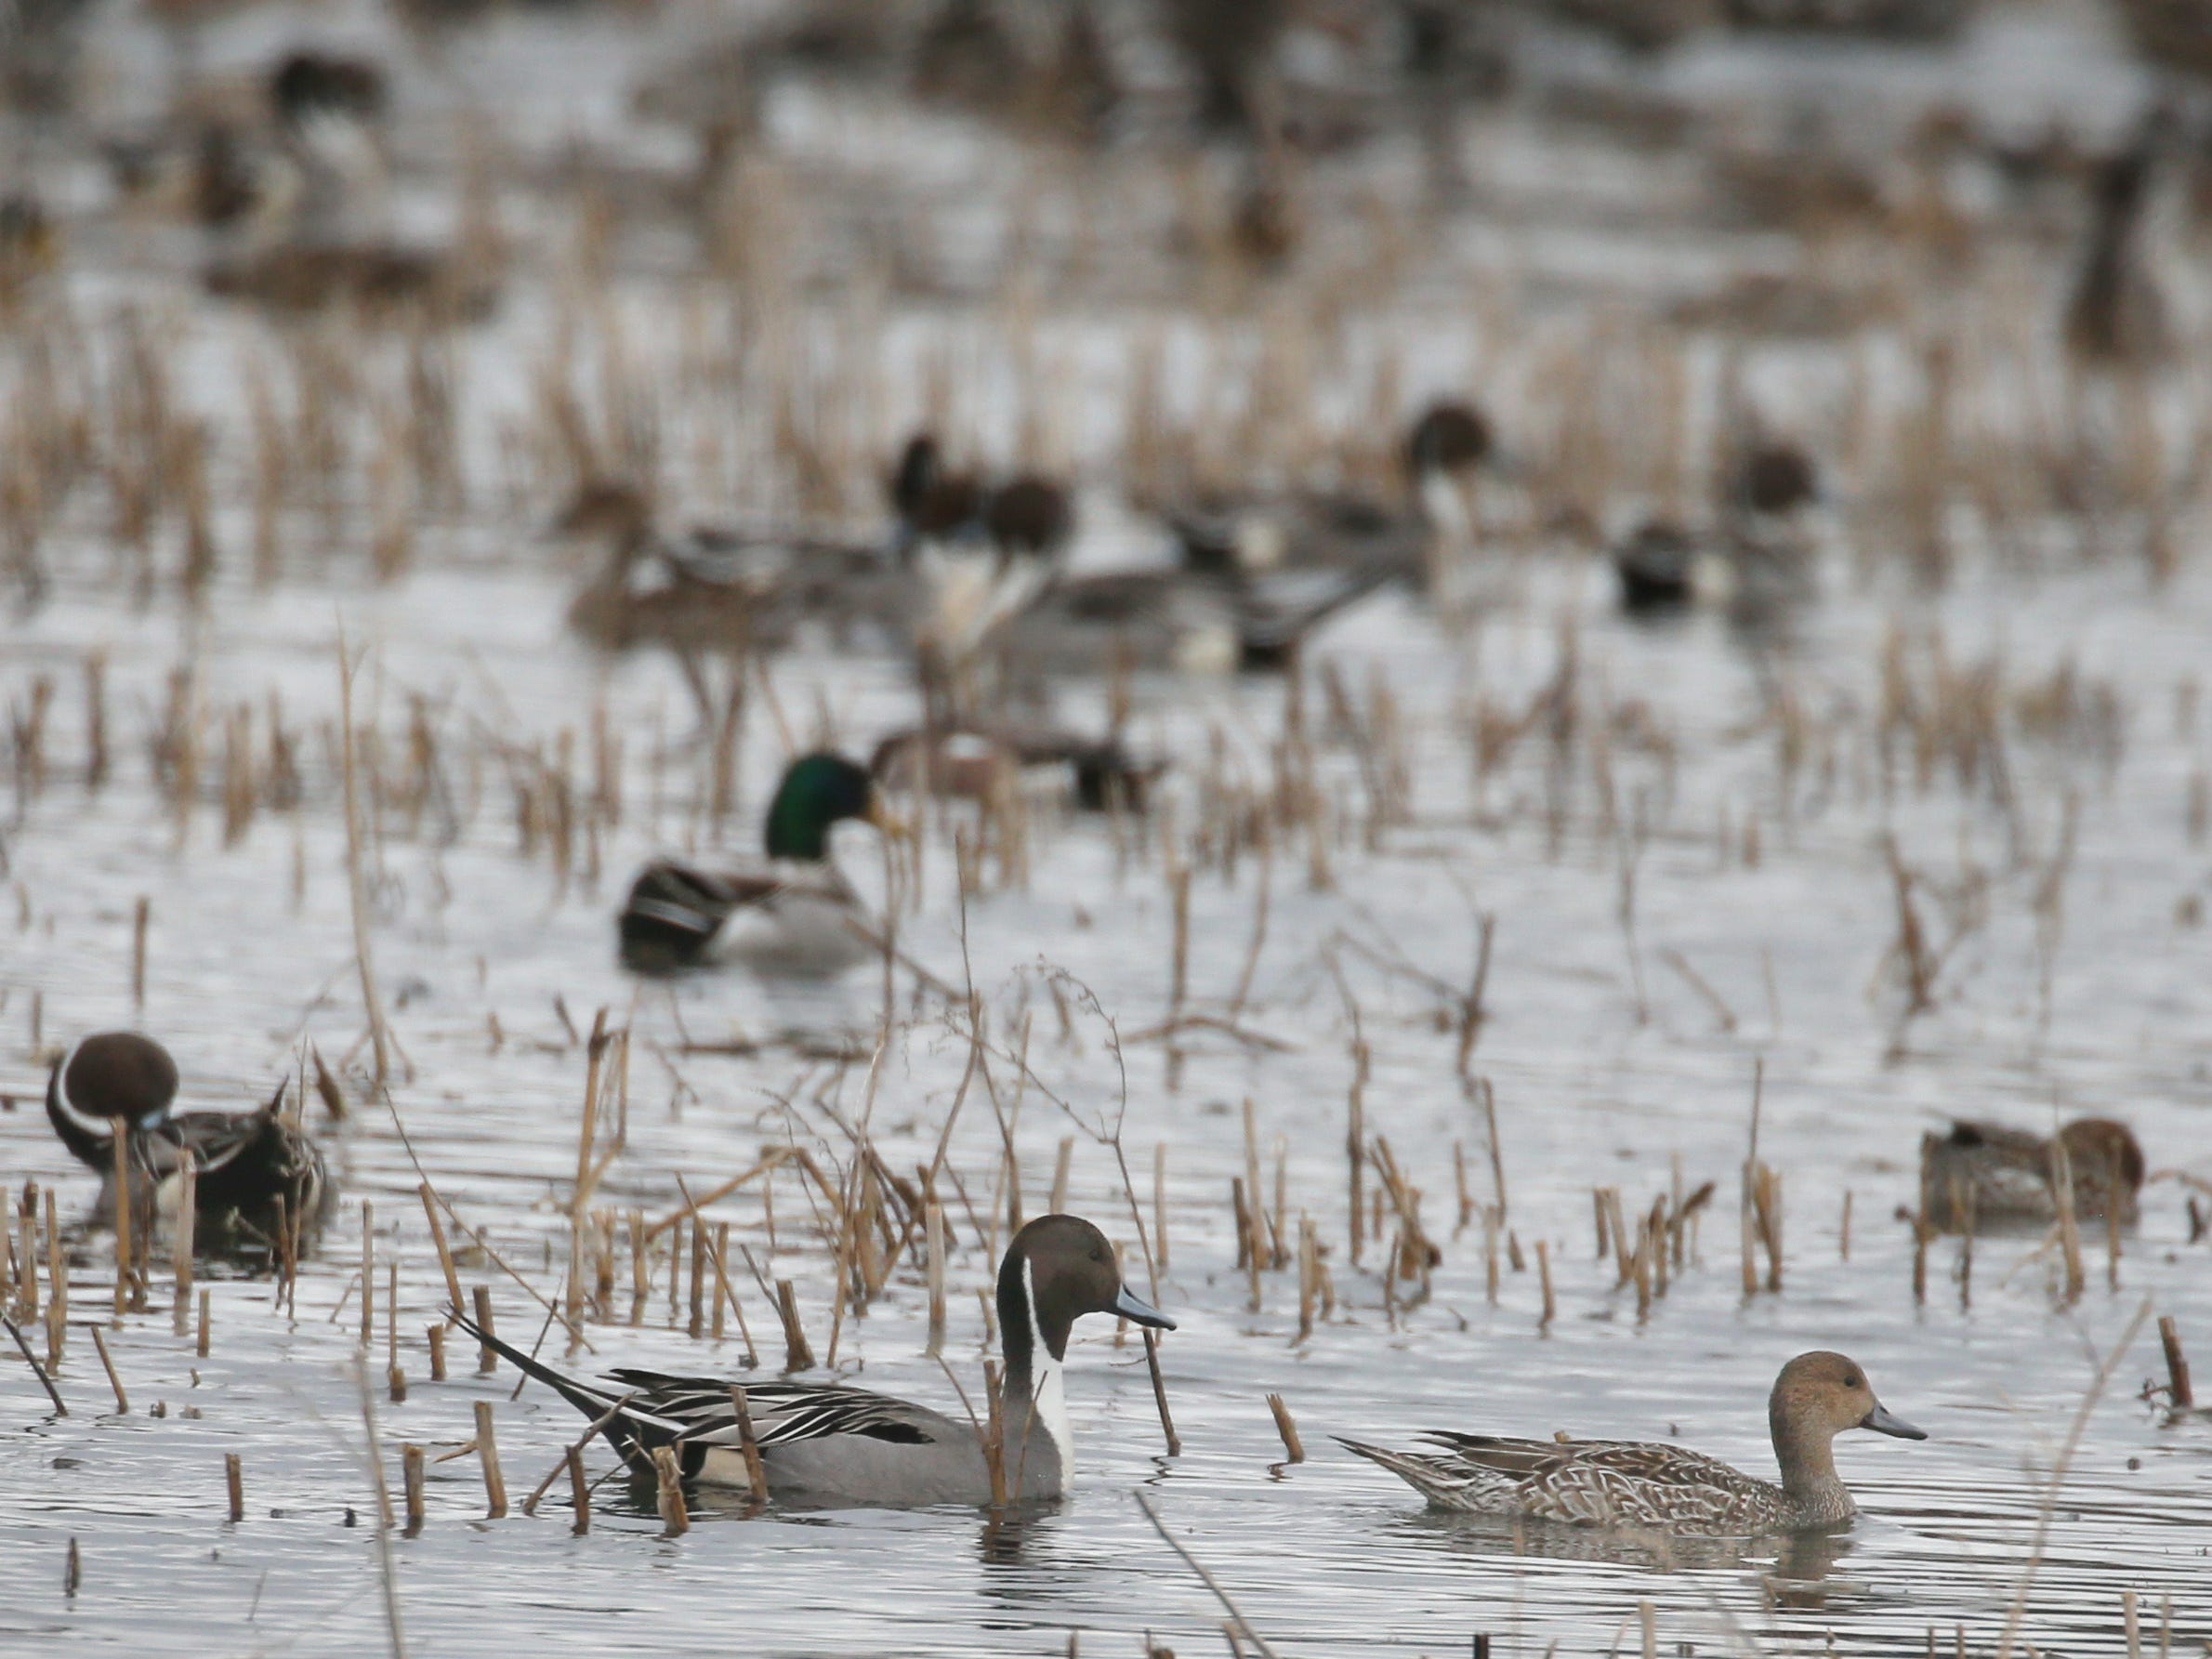 A large group of Northern Pintail ducks feed in a flooded farm field during the annual spring migration at the Montezuma Wetlands Complex in Savannah Thursday, March 21, 2019.